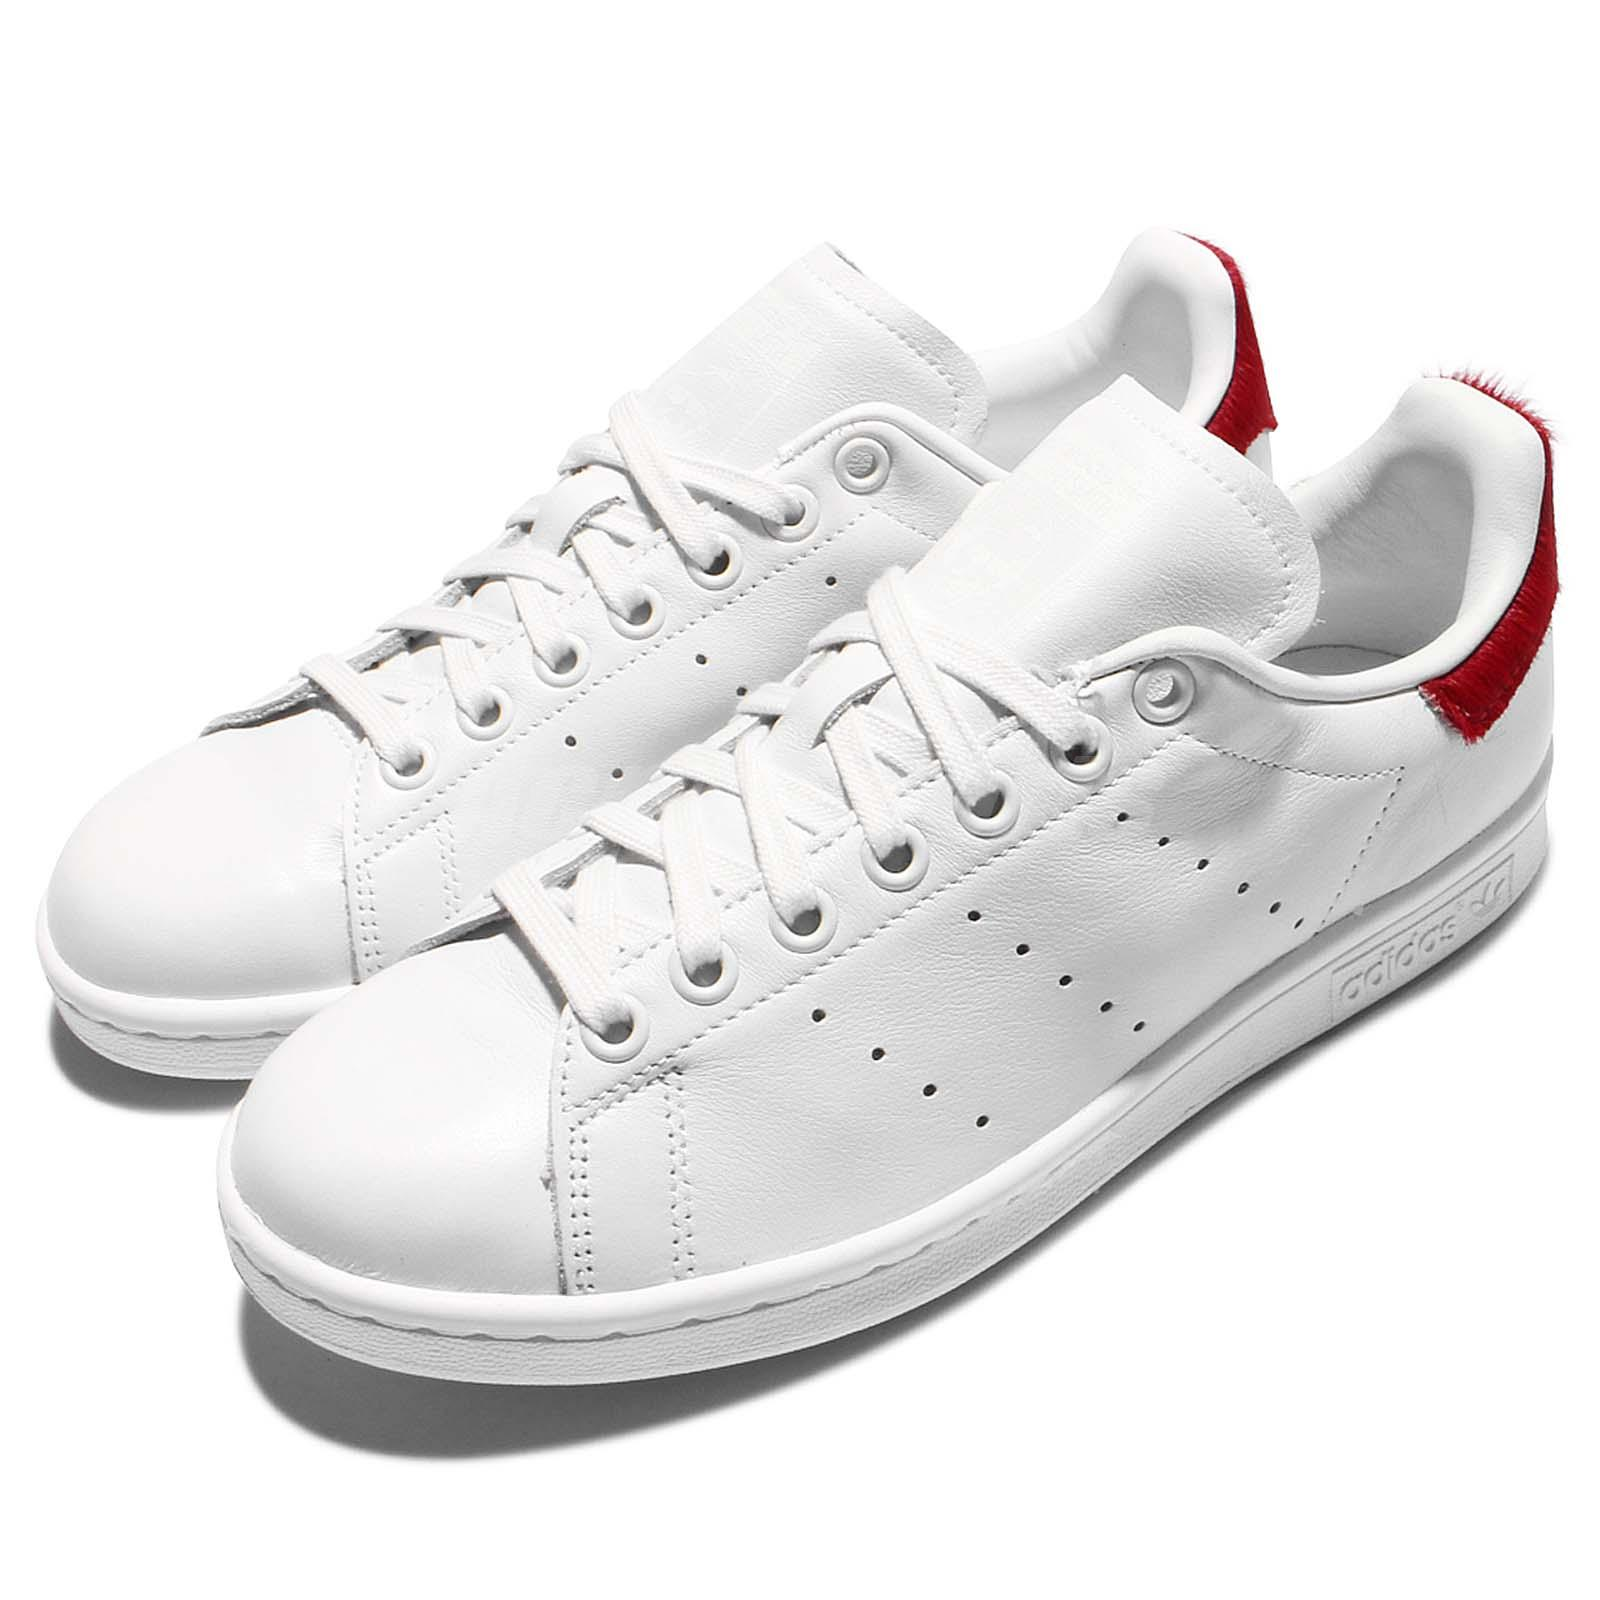 classic stan smith adidas